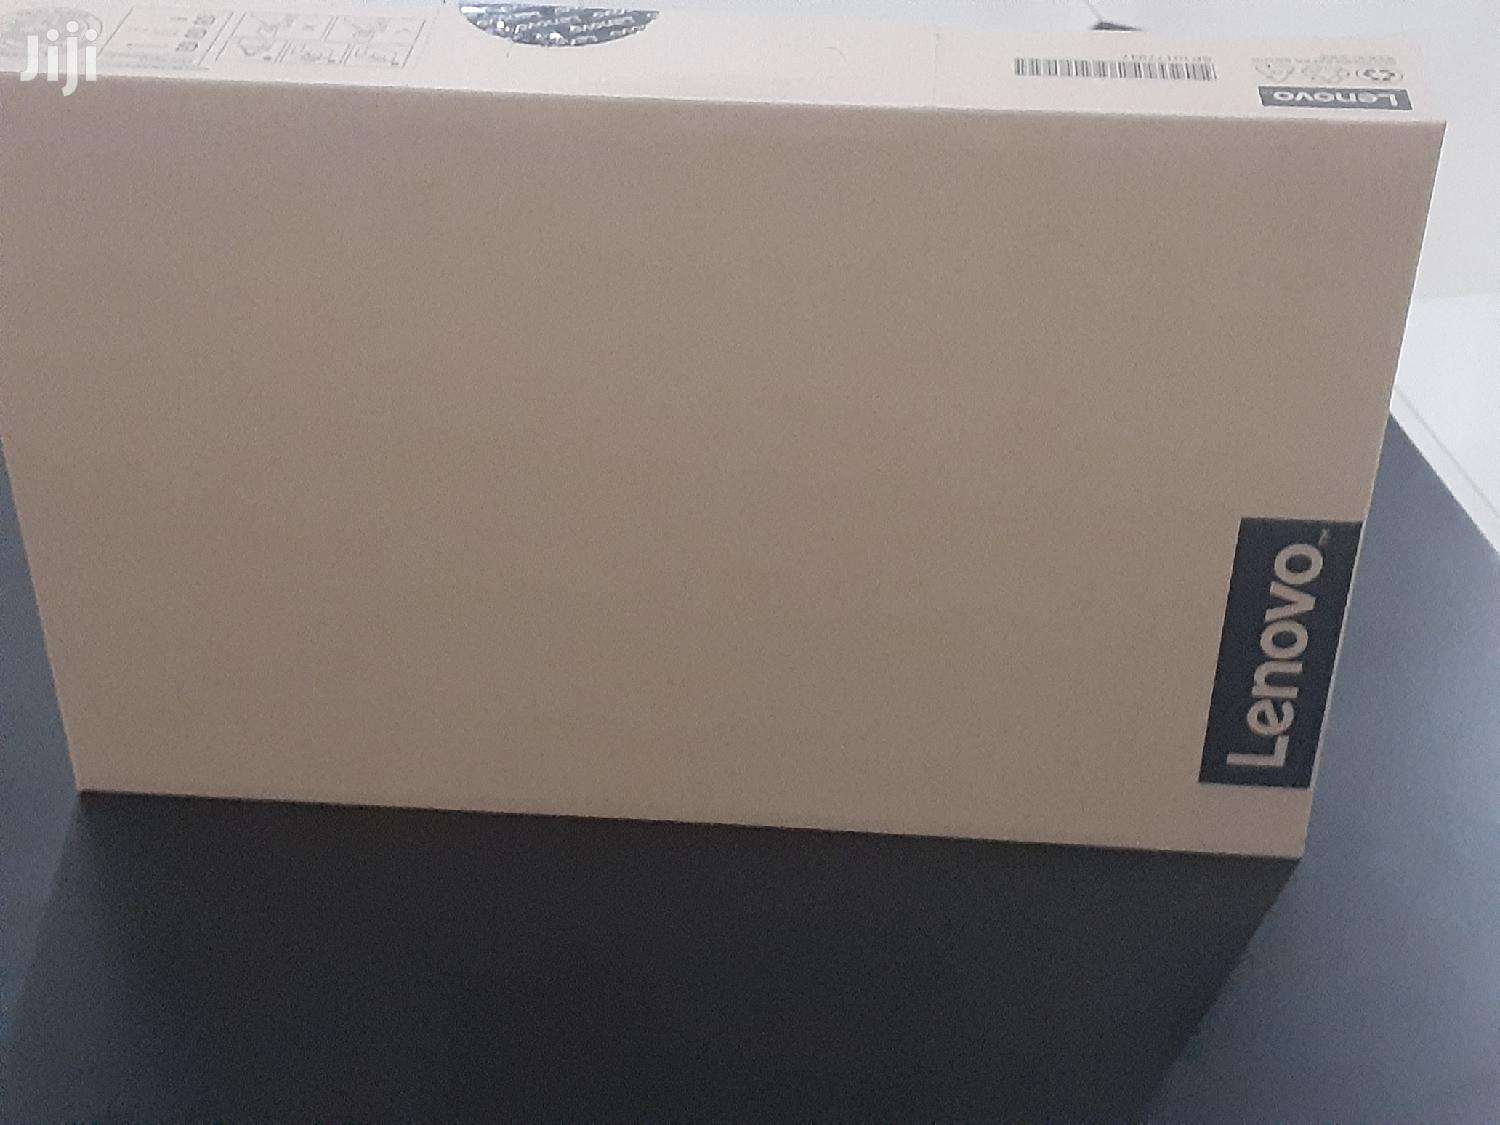 New Laptop Lenovo 4GB Intel Celeron HDD 1T | Laptops & Computers for sale in Accra New Town, Greater Accra, Ghana